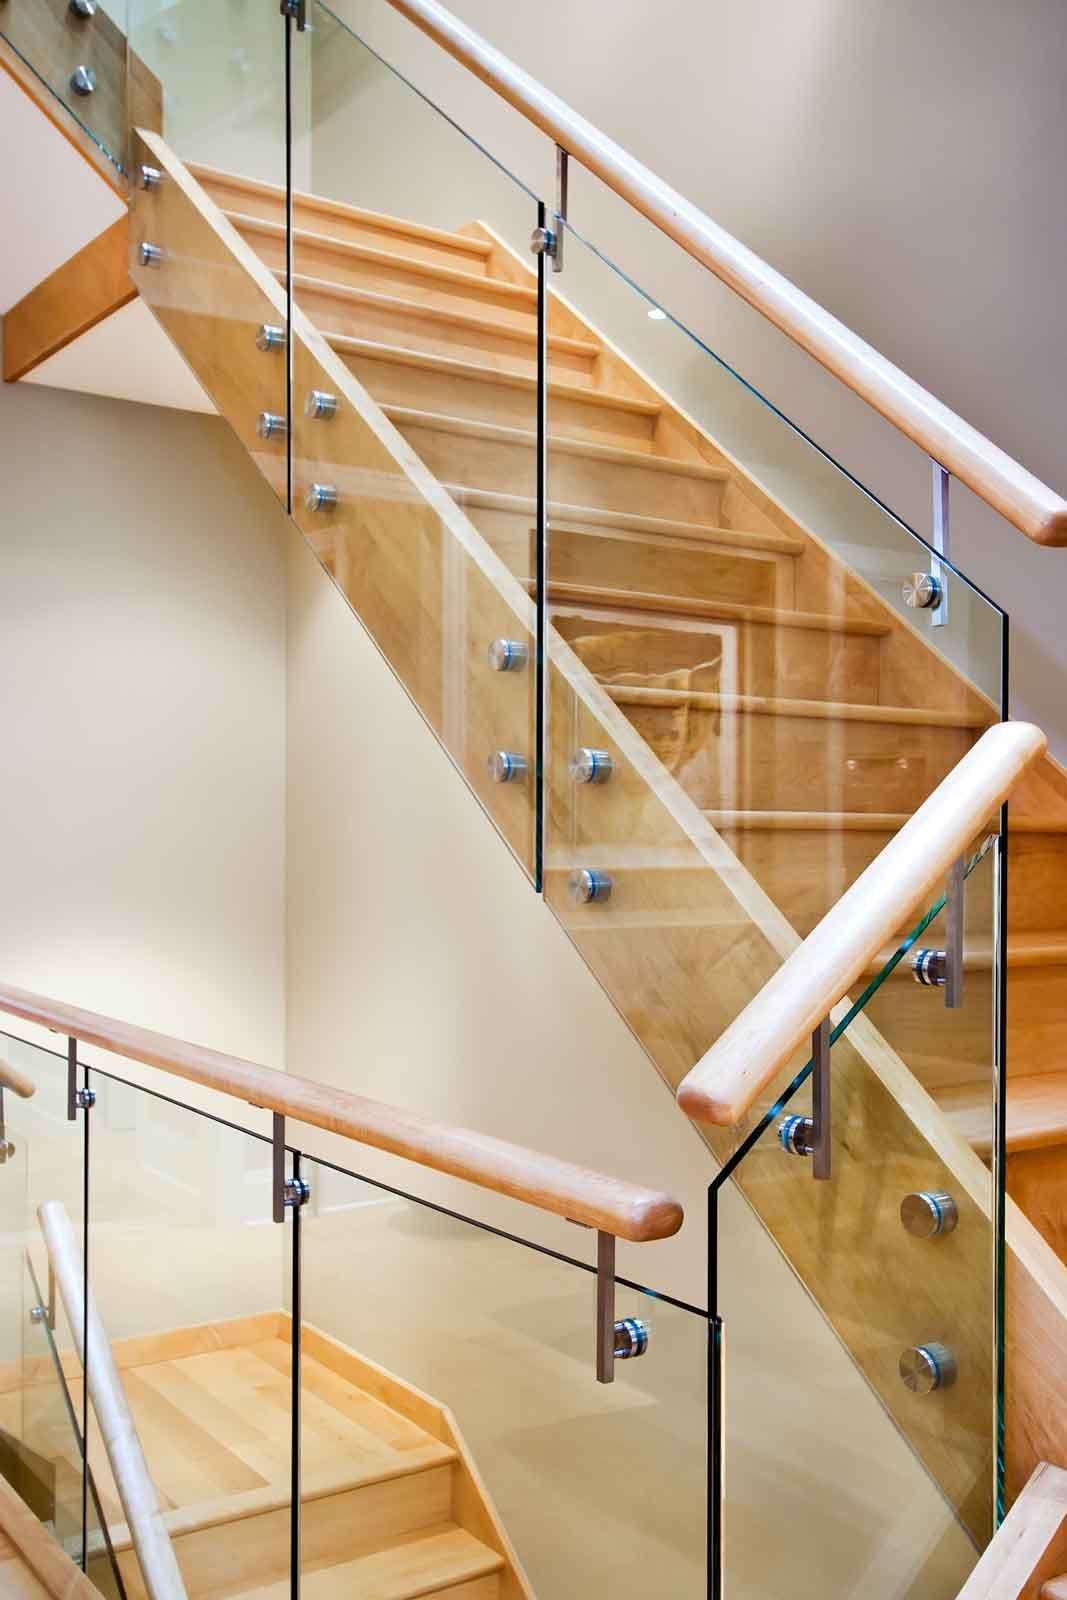 custom stairs by amy may of may designs interior designer based in